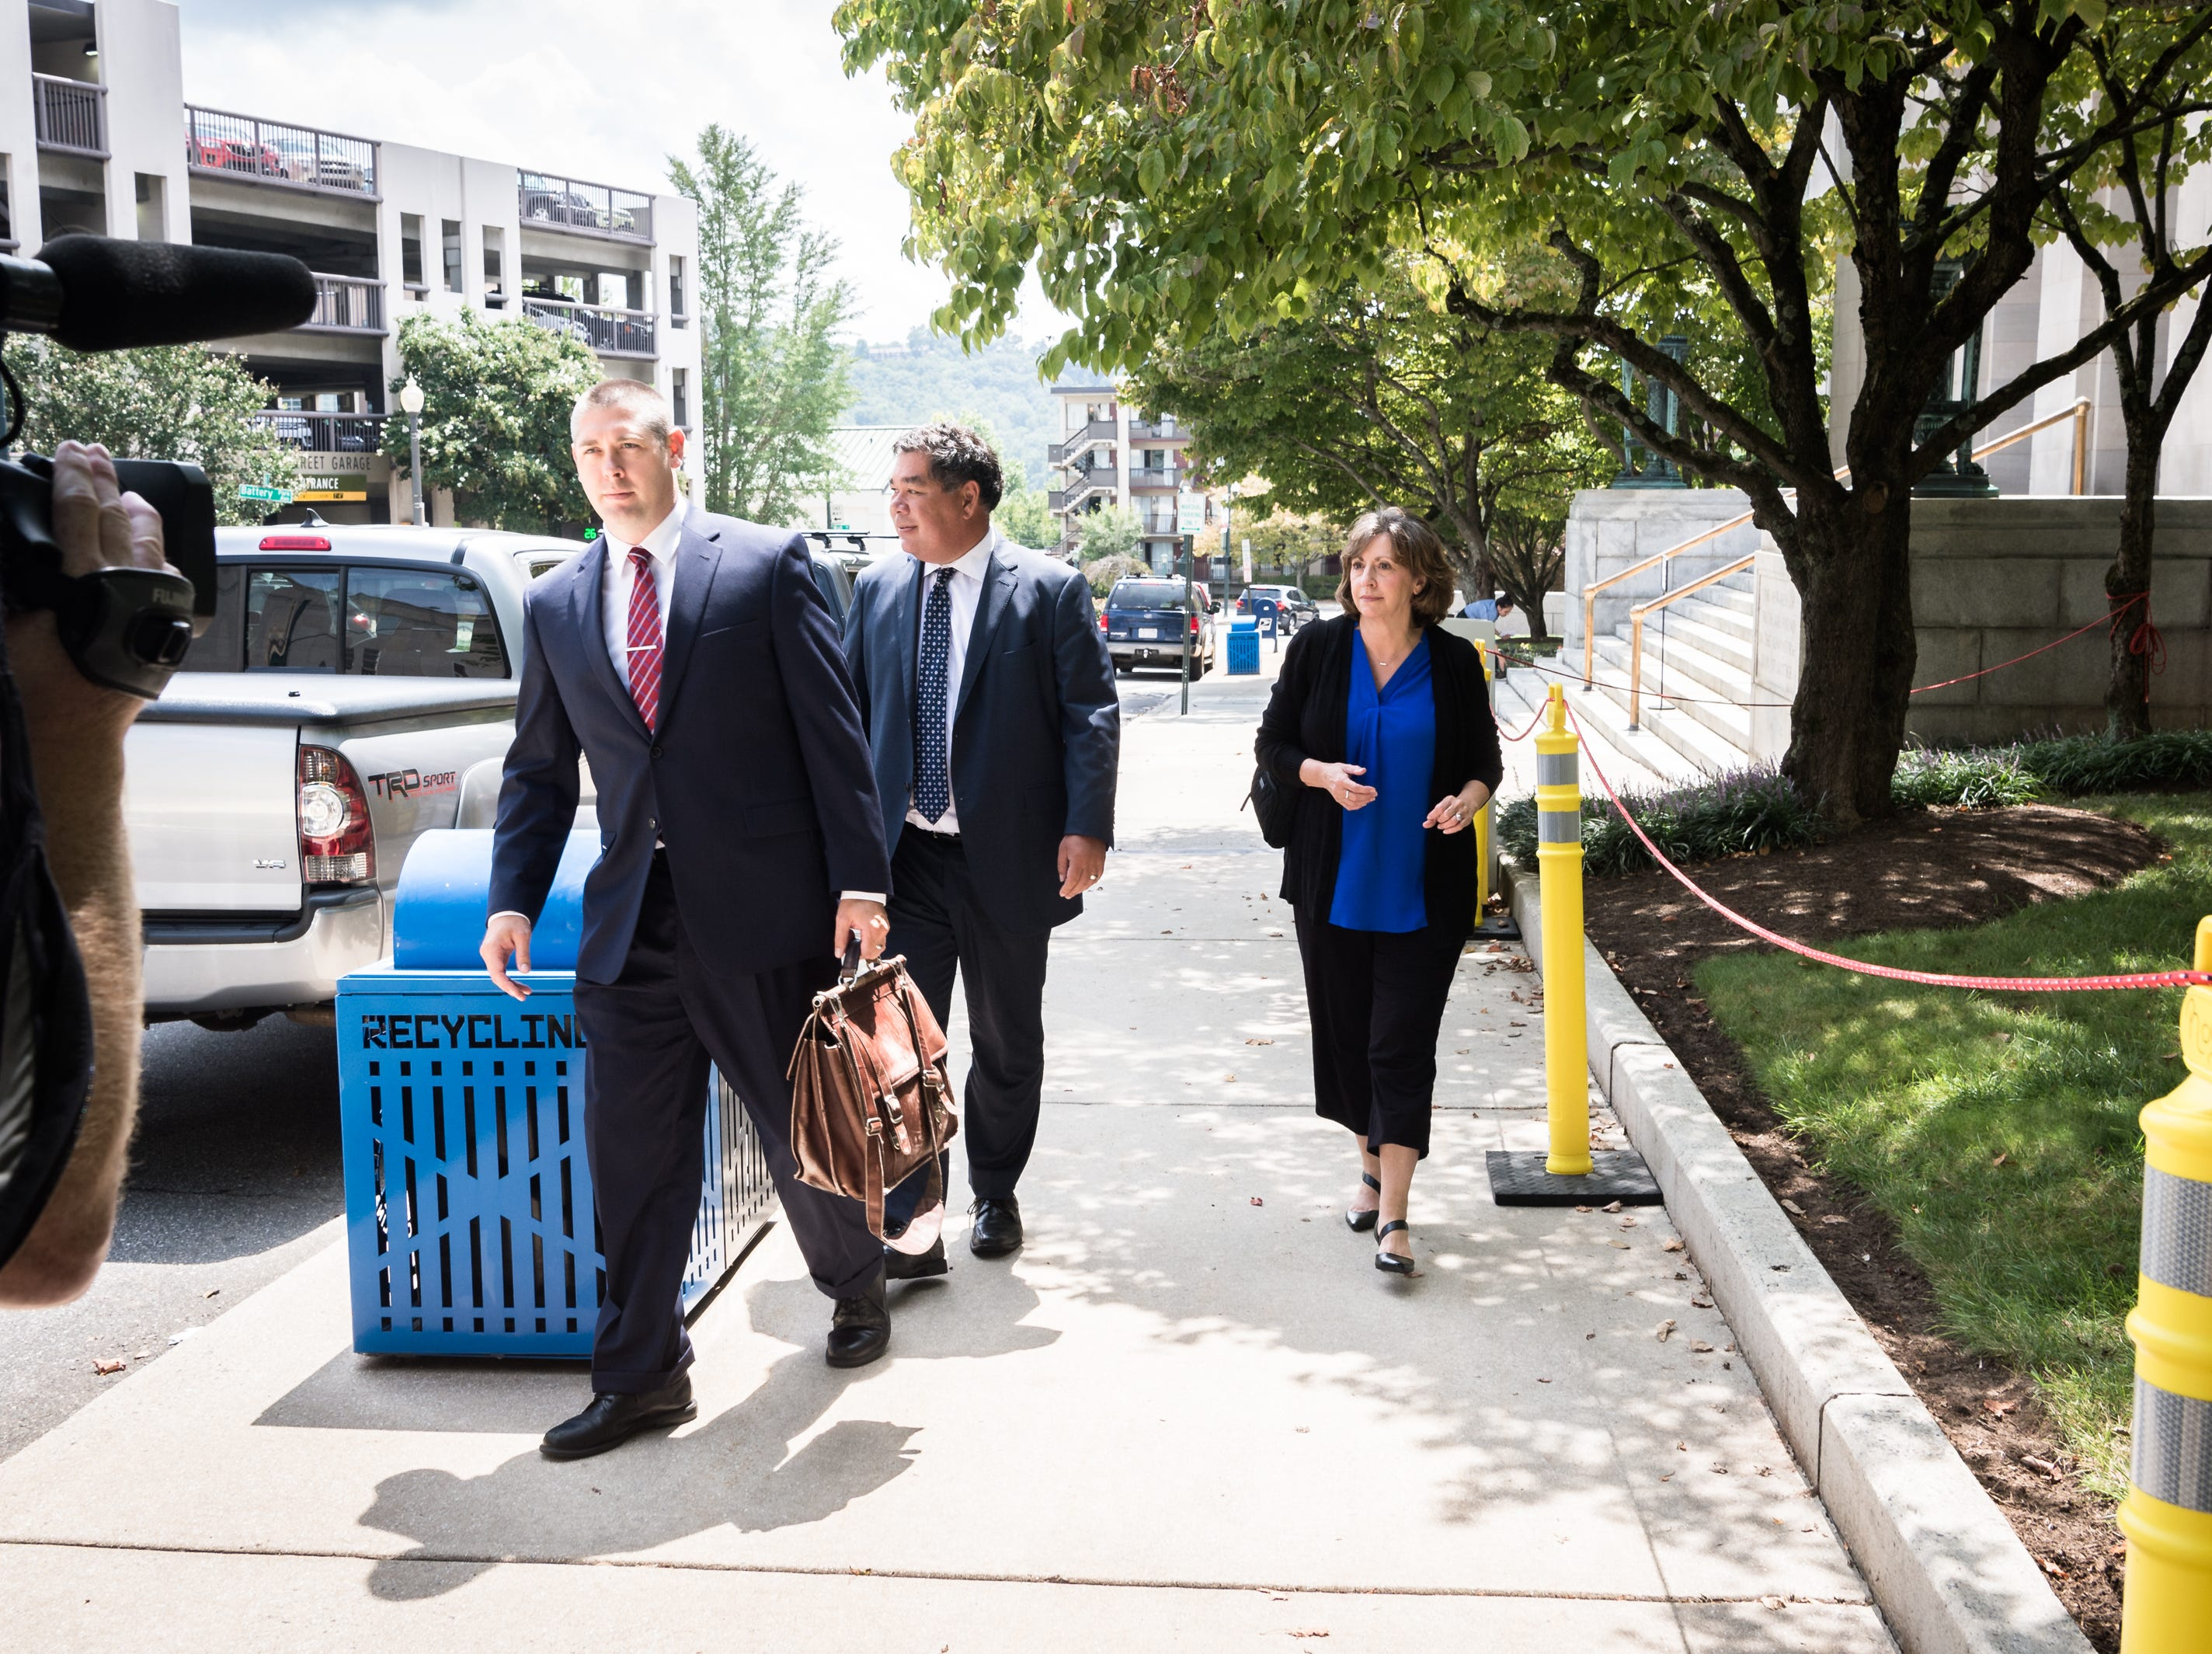 Wanda Greene, former Buncombe County manager, leaves the federal courthouse with her attorneys Noell Tin and Thomas Amburgey, Monday, August 20, 2018, after being arraigned on charges of six counts of tax fraud in connection to a life insurance scheme and embezzlement alleged by prosecutors in previous indictments. Greene, as well as her son Michael Greene have additionally been charged with wire fraud, conspiracy, embezzlement and aiding and abetting.